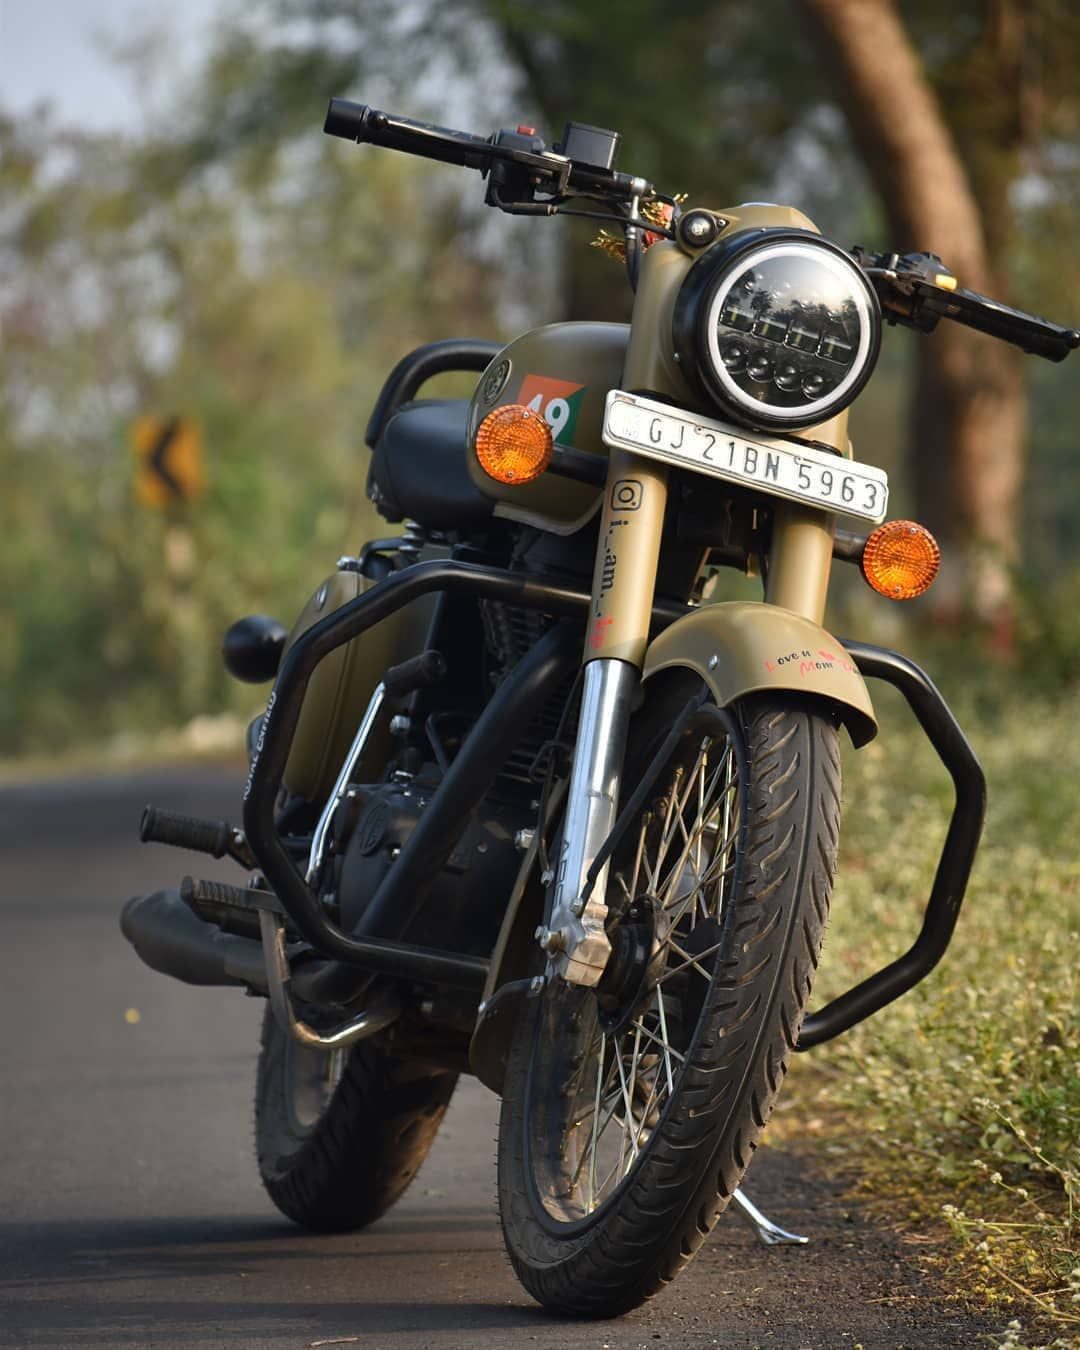 Pin By Anurag Bhole On Anurag Bhole In 2020 Royal Enfield